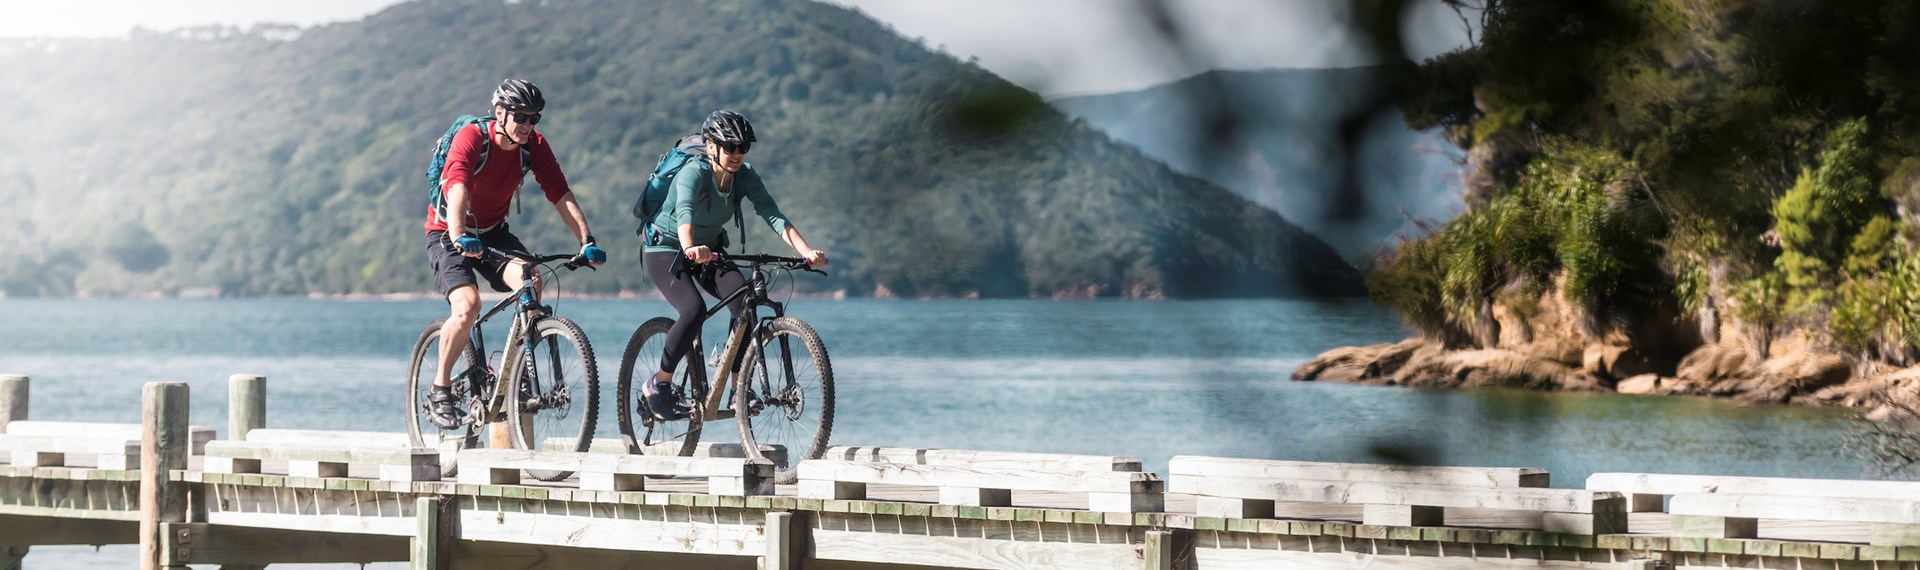 Two mountain bikers on the jetty at Ship Cove/Meretoto, about to start the Queen Charlotte Track in the Marlborough Sounds, New Zealand.